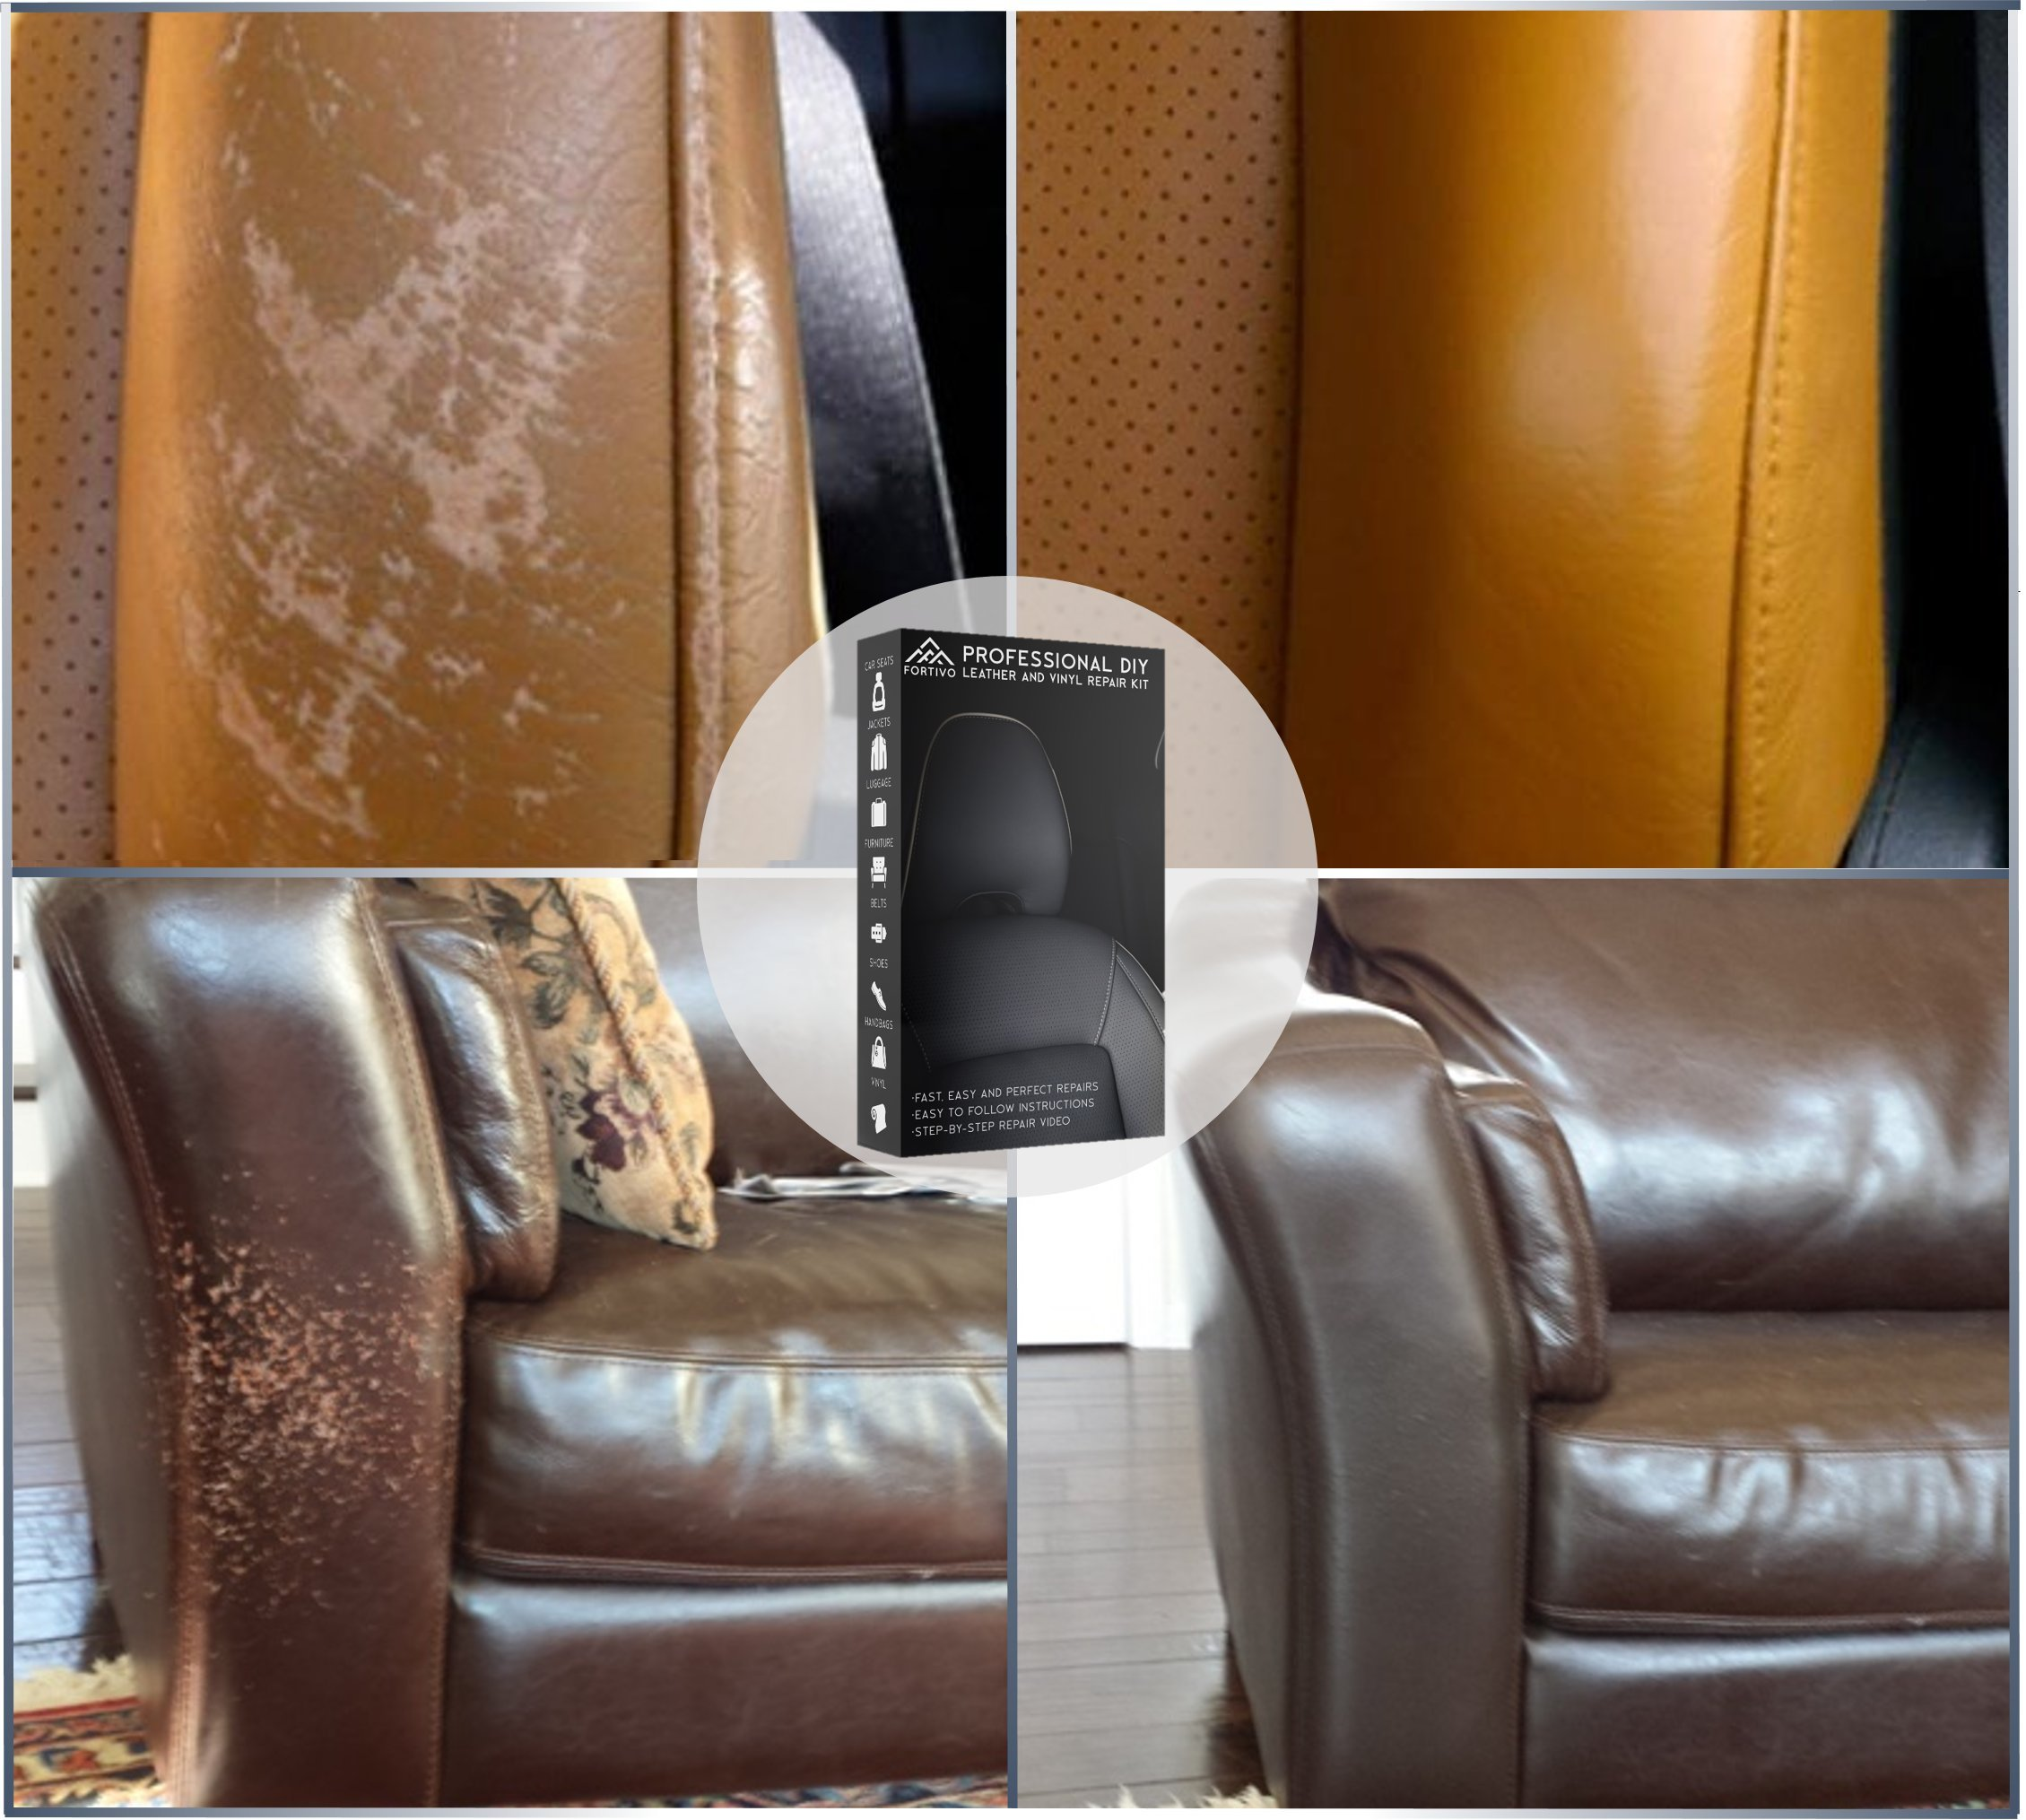 Leather and Vinyl Repair Kit - Furniture, Couch, Car Seats, Sofa